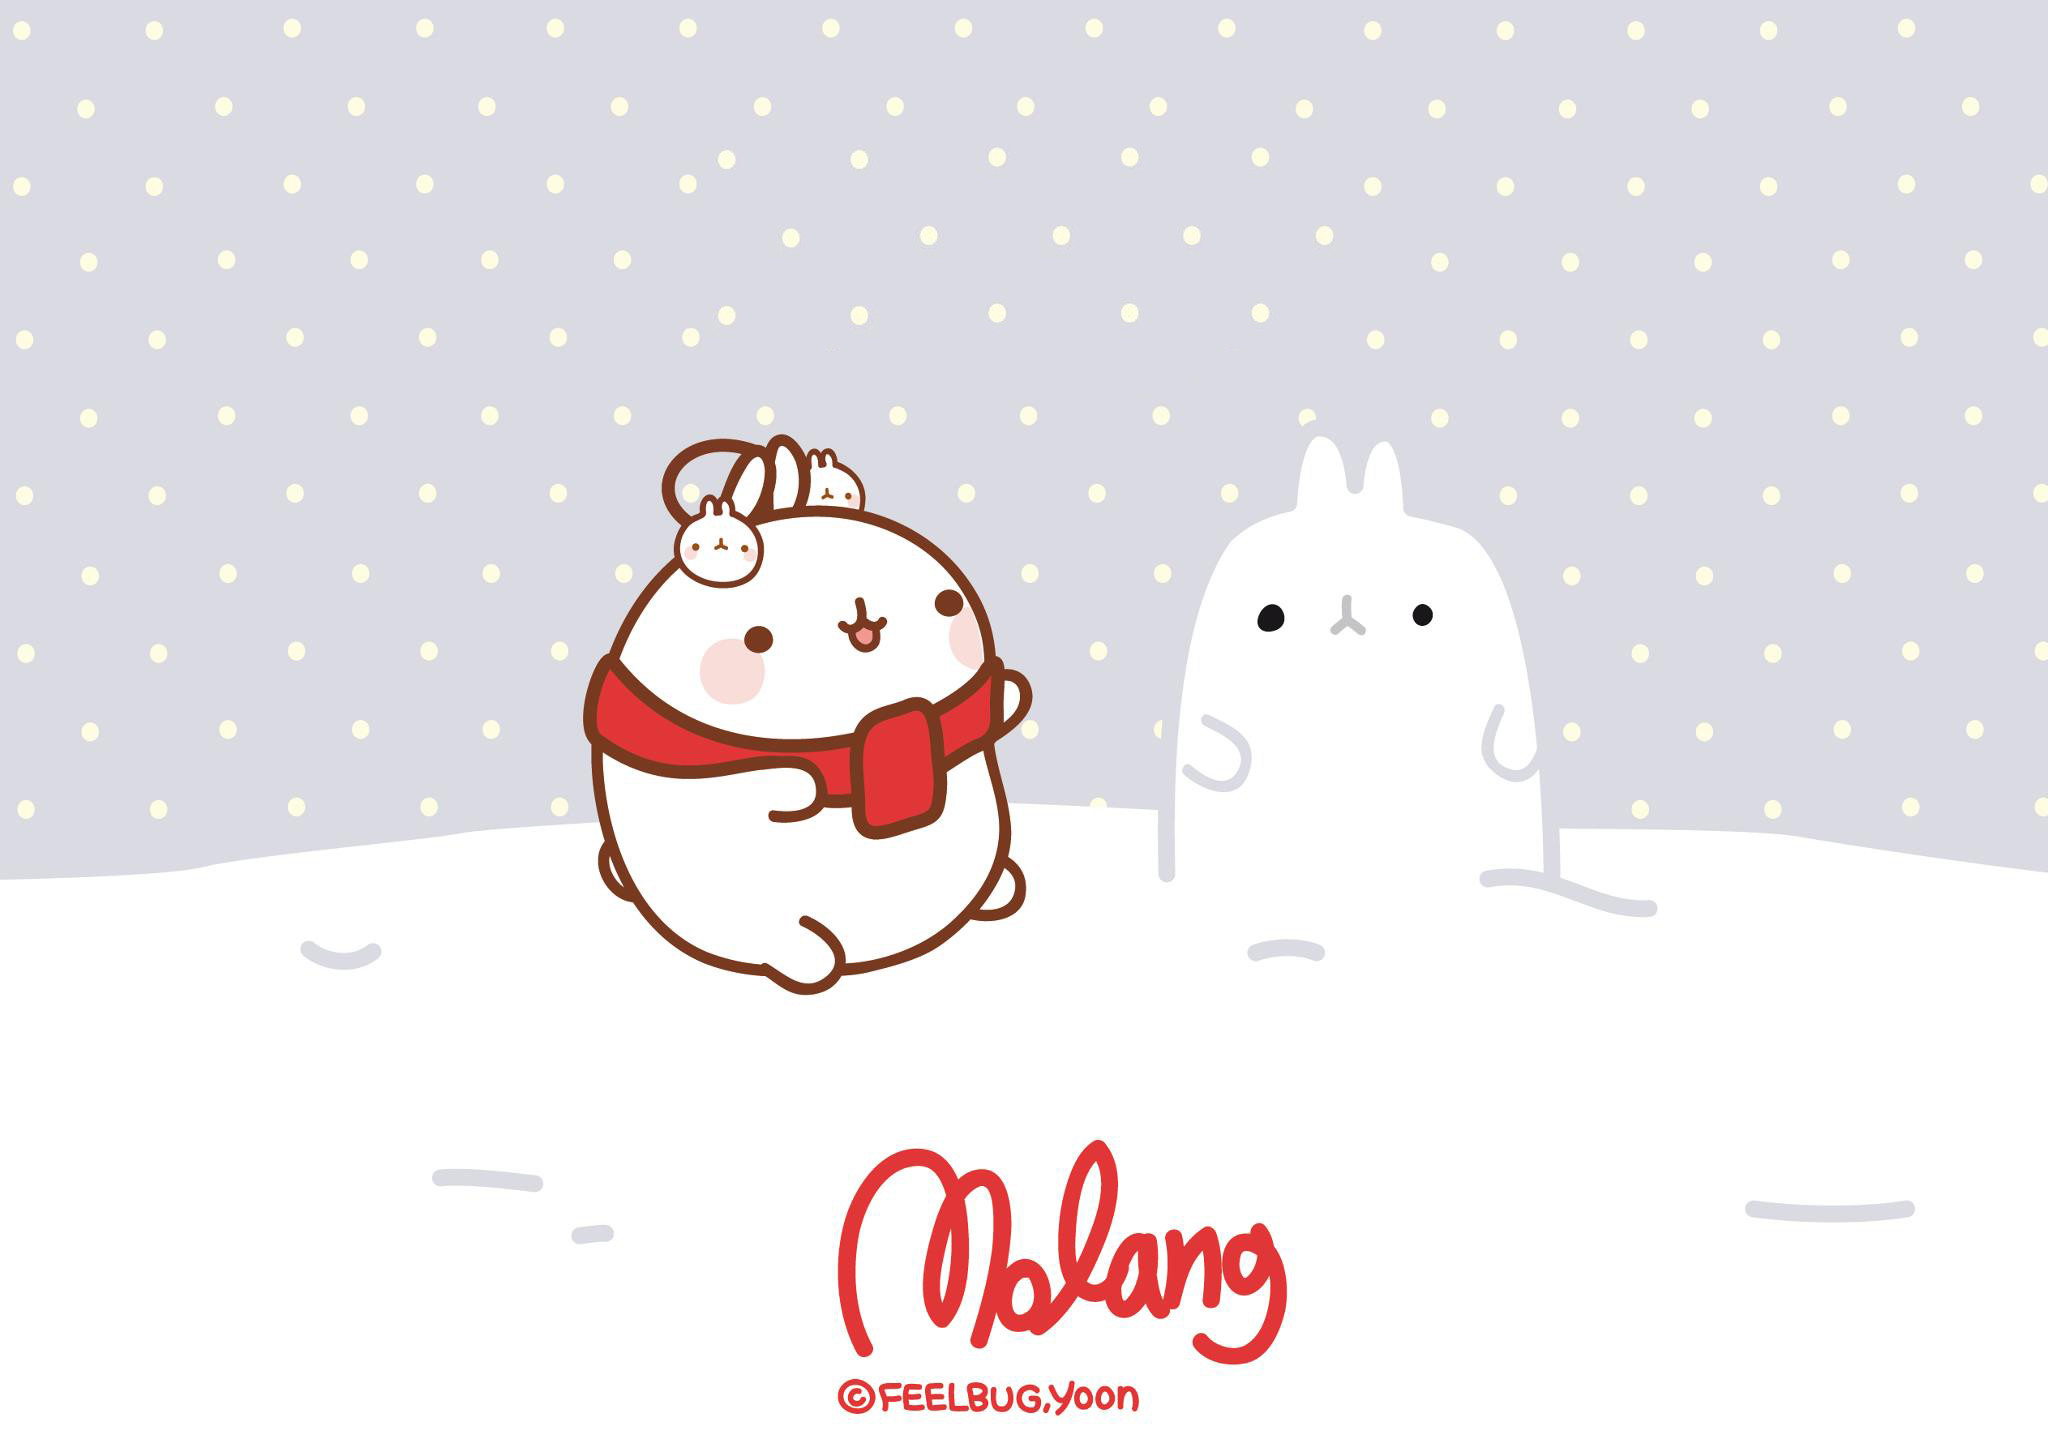 2048x1452 San-X Molang Christmas Desktop Wallpapers - Here are 3 super cute Molang Desktop  Backgrounds for Christmas! Click each image to be taken to the full size ...